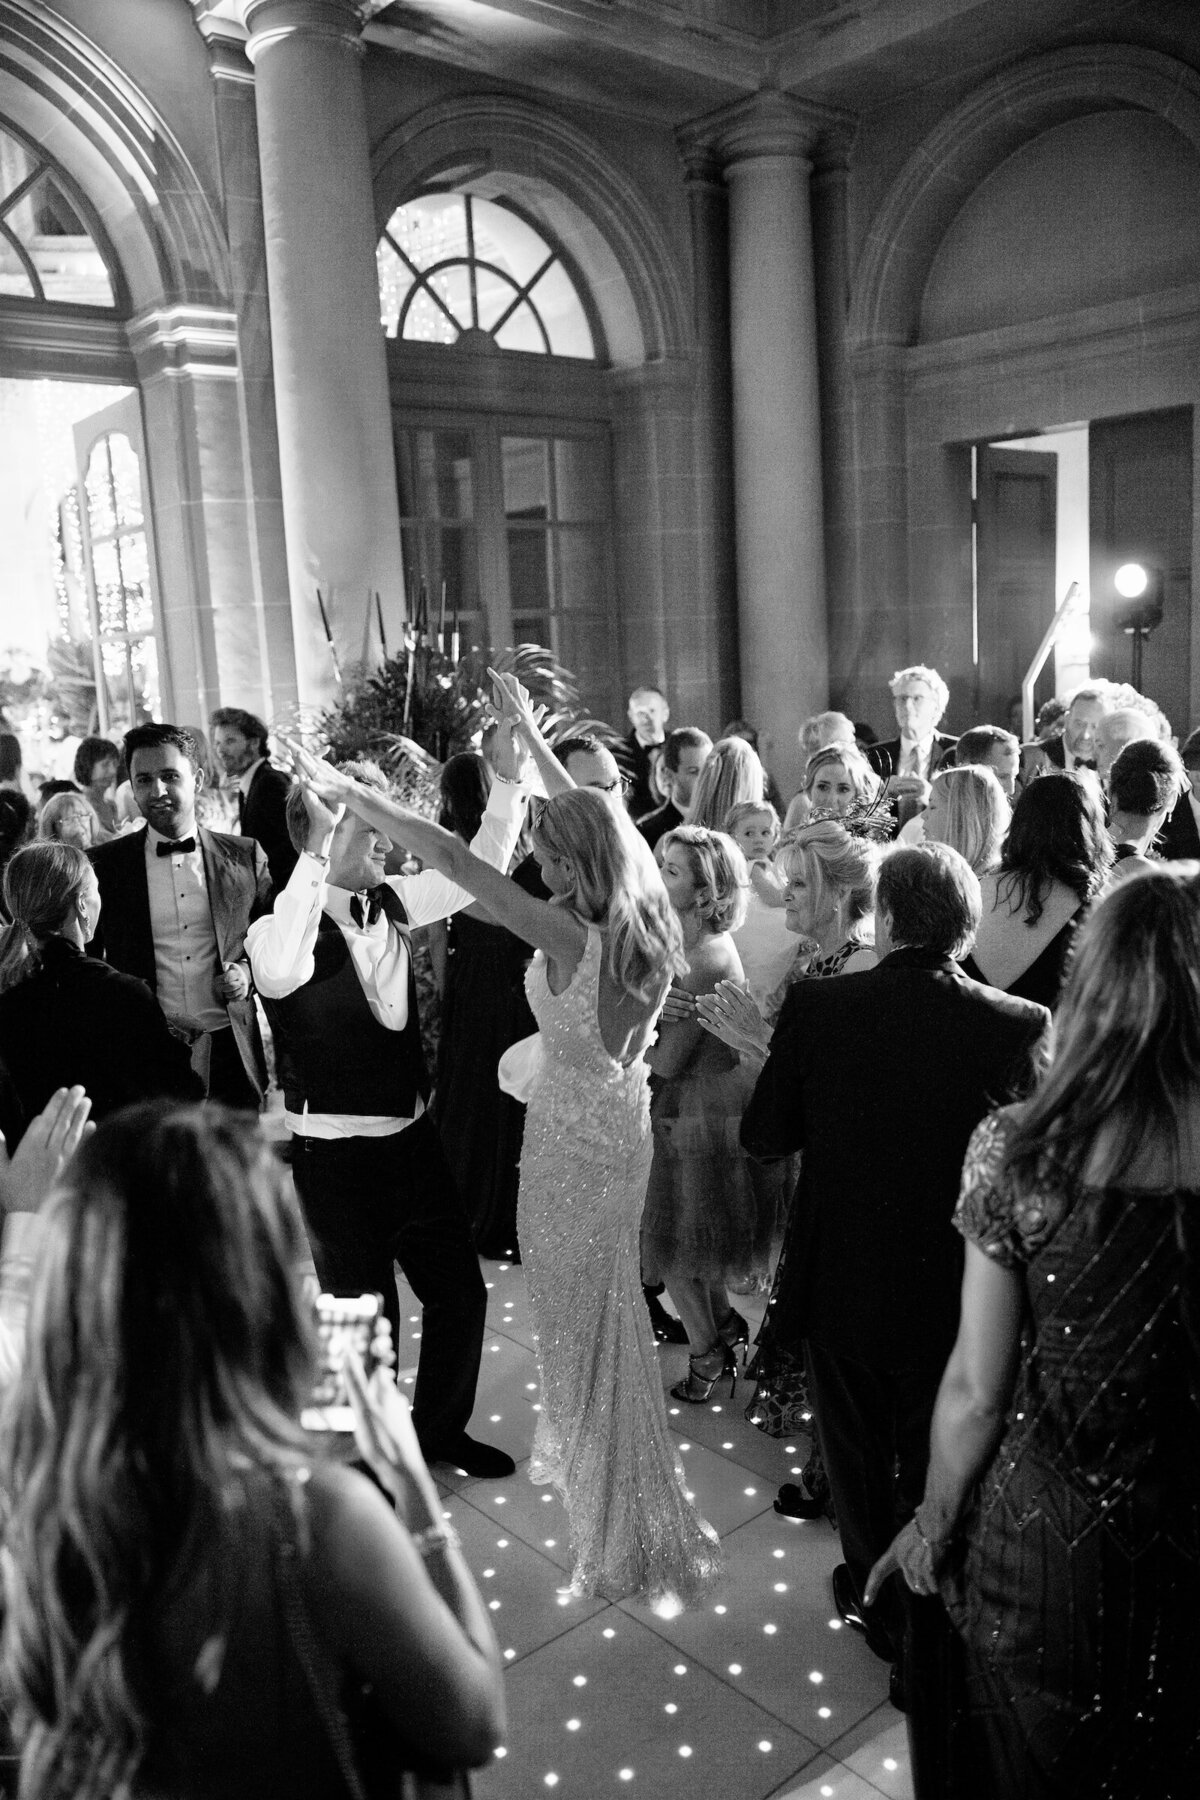 vaux-le-vicomte-luxury-wedding-phototographer-in-paris (21 of 56)